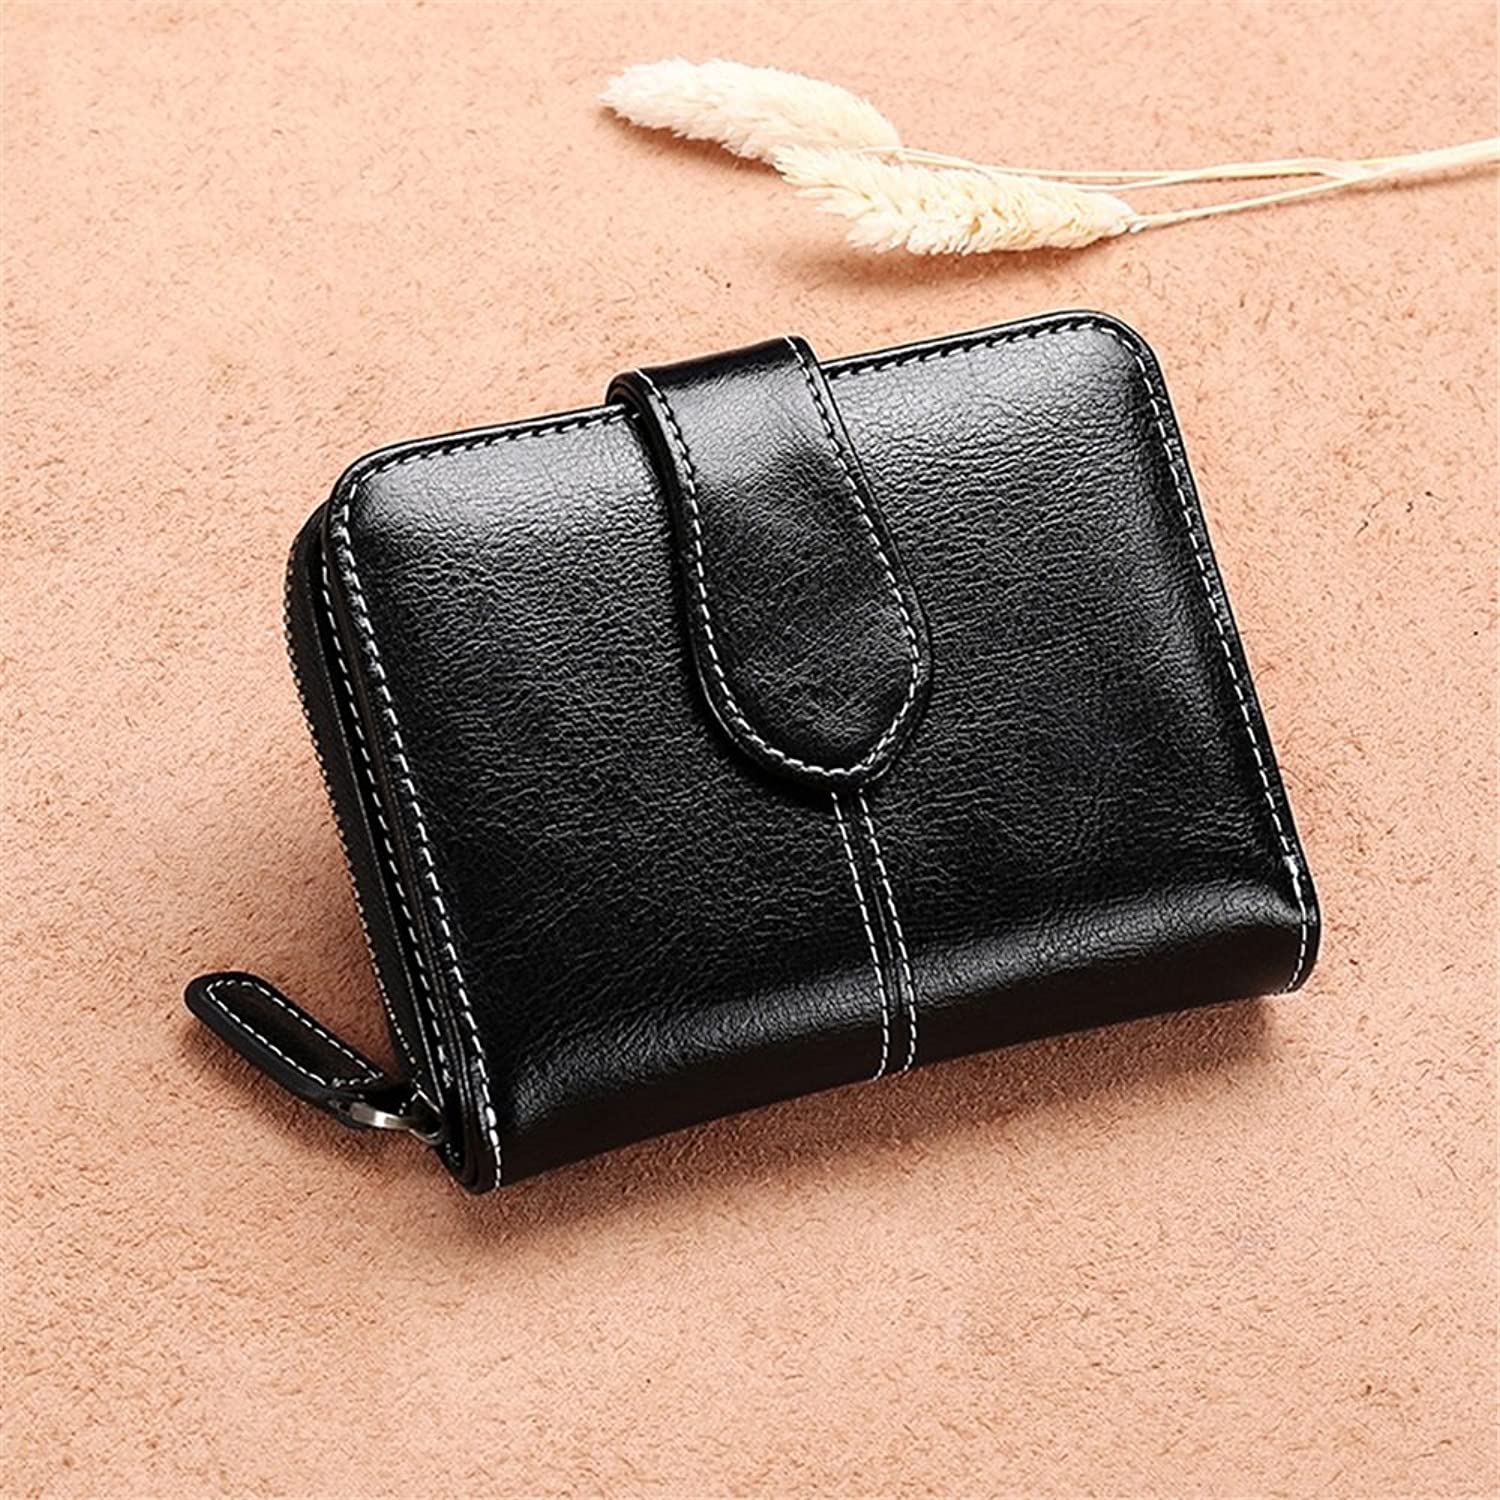 Women's Wallet Fashion Personality to Send A Good Friend Gift Lady Short Leather Wallet Short Buckle Cute Wallet Small Wallet Out Shopping Wear Essential (color   Black)